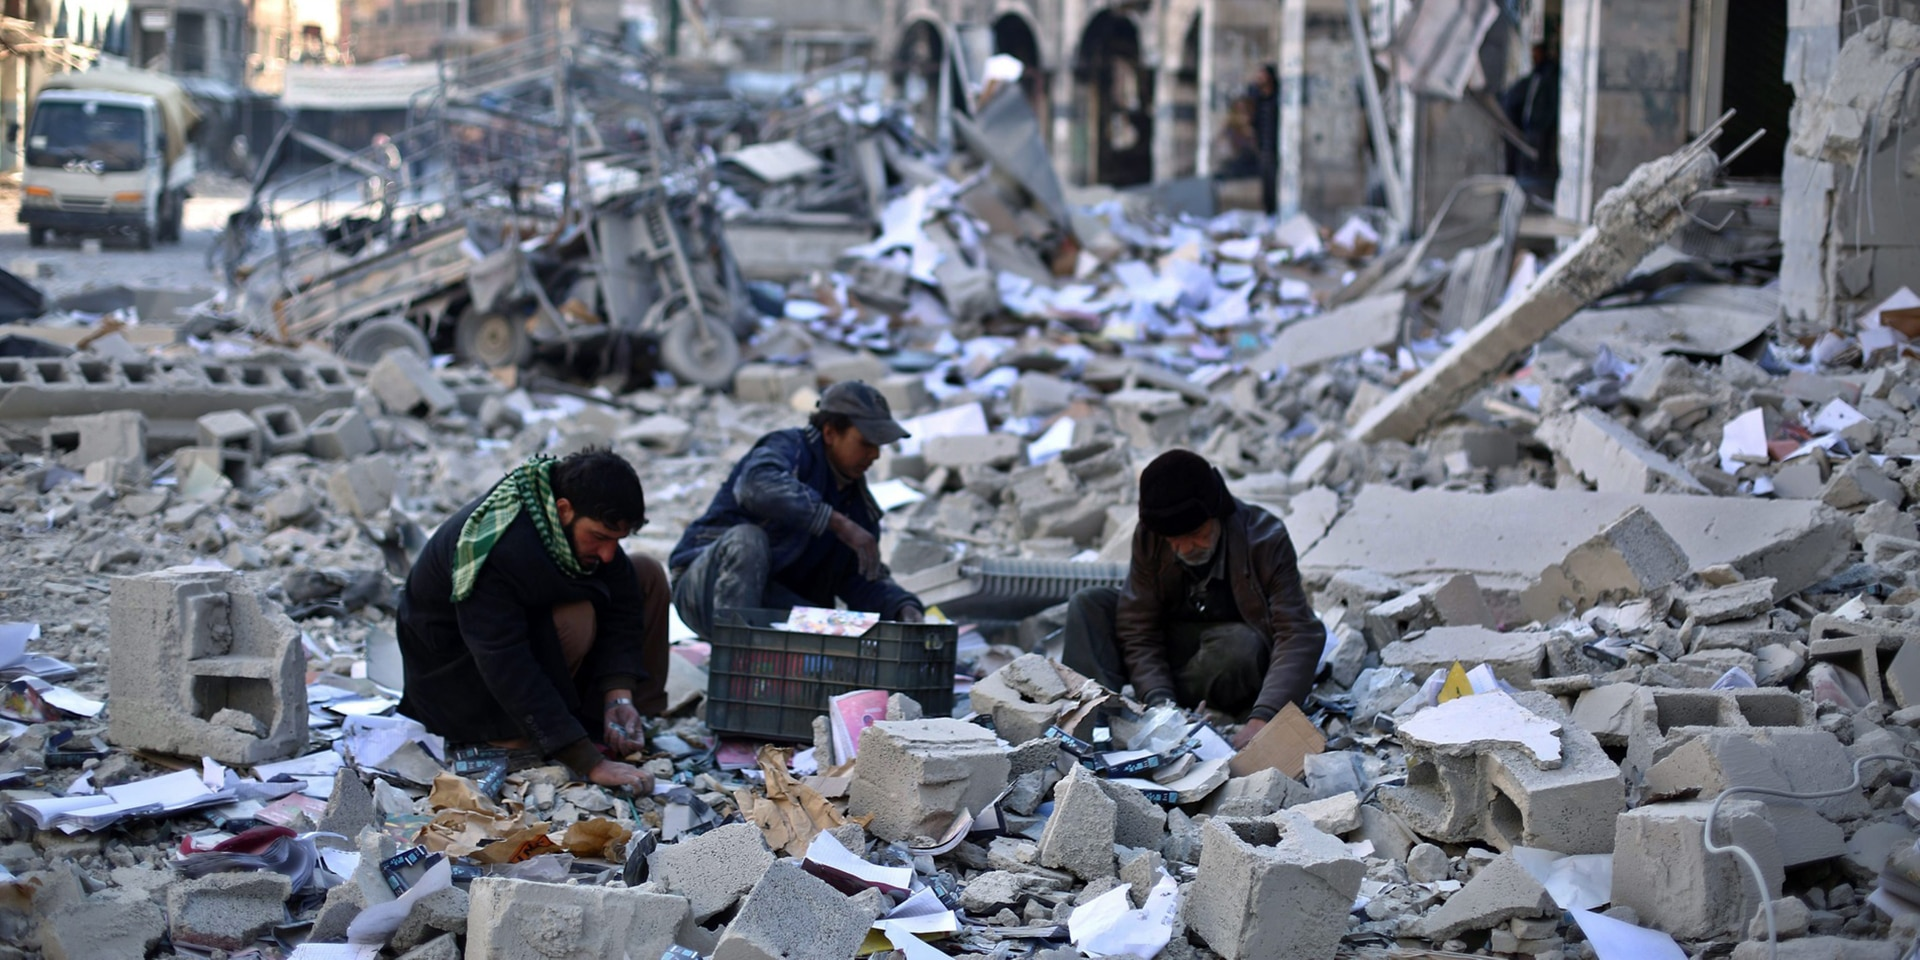 Three men, surrounded by a sea of rubble, pick through the debris of a building destroyed in an air strike.